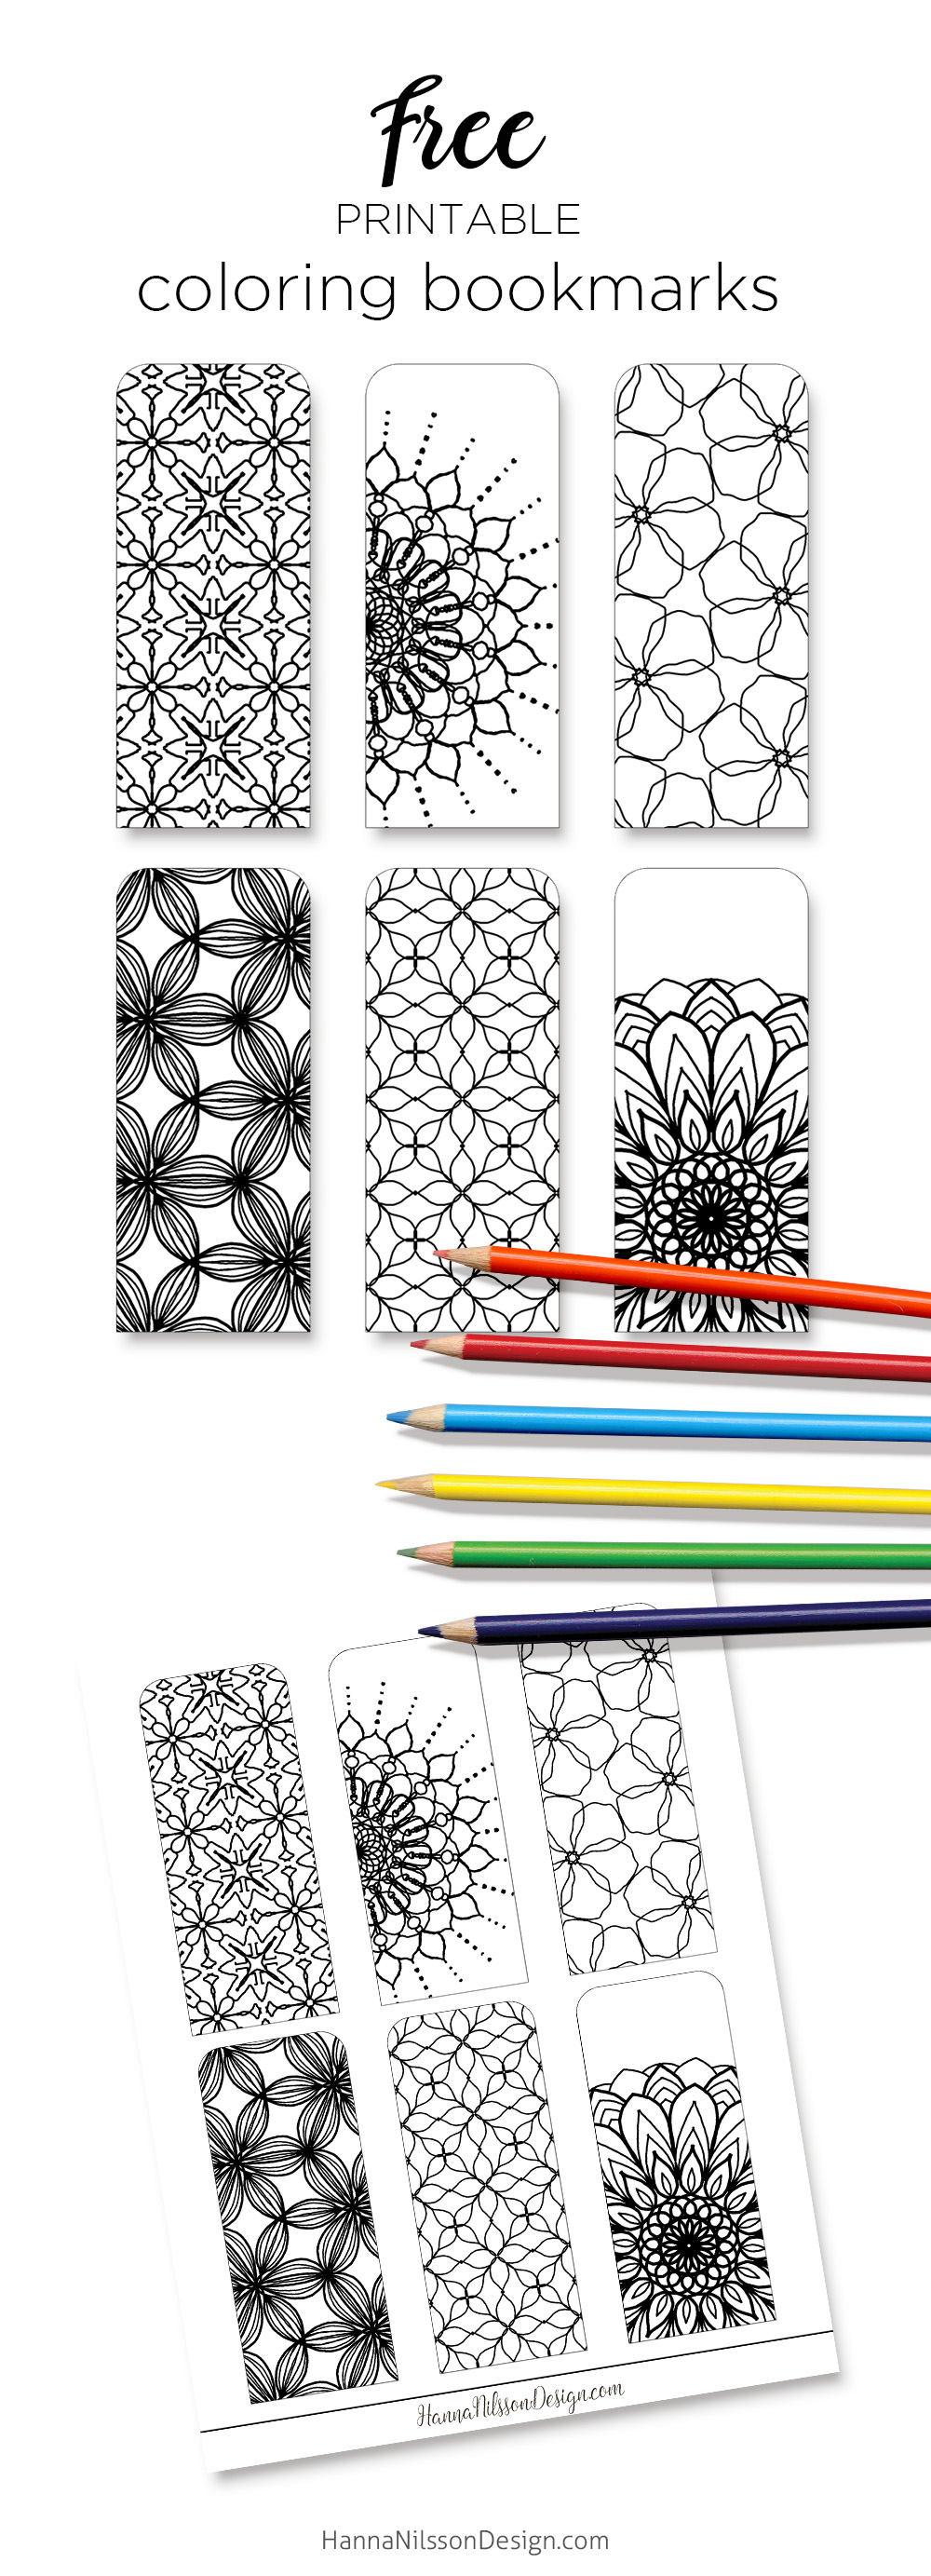 Coloring bookmarks – print, color and read – Hanna Nilsson Design